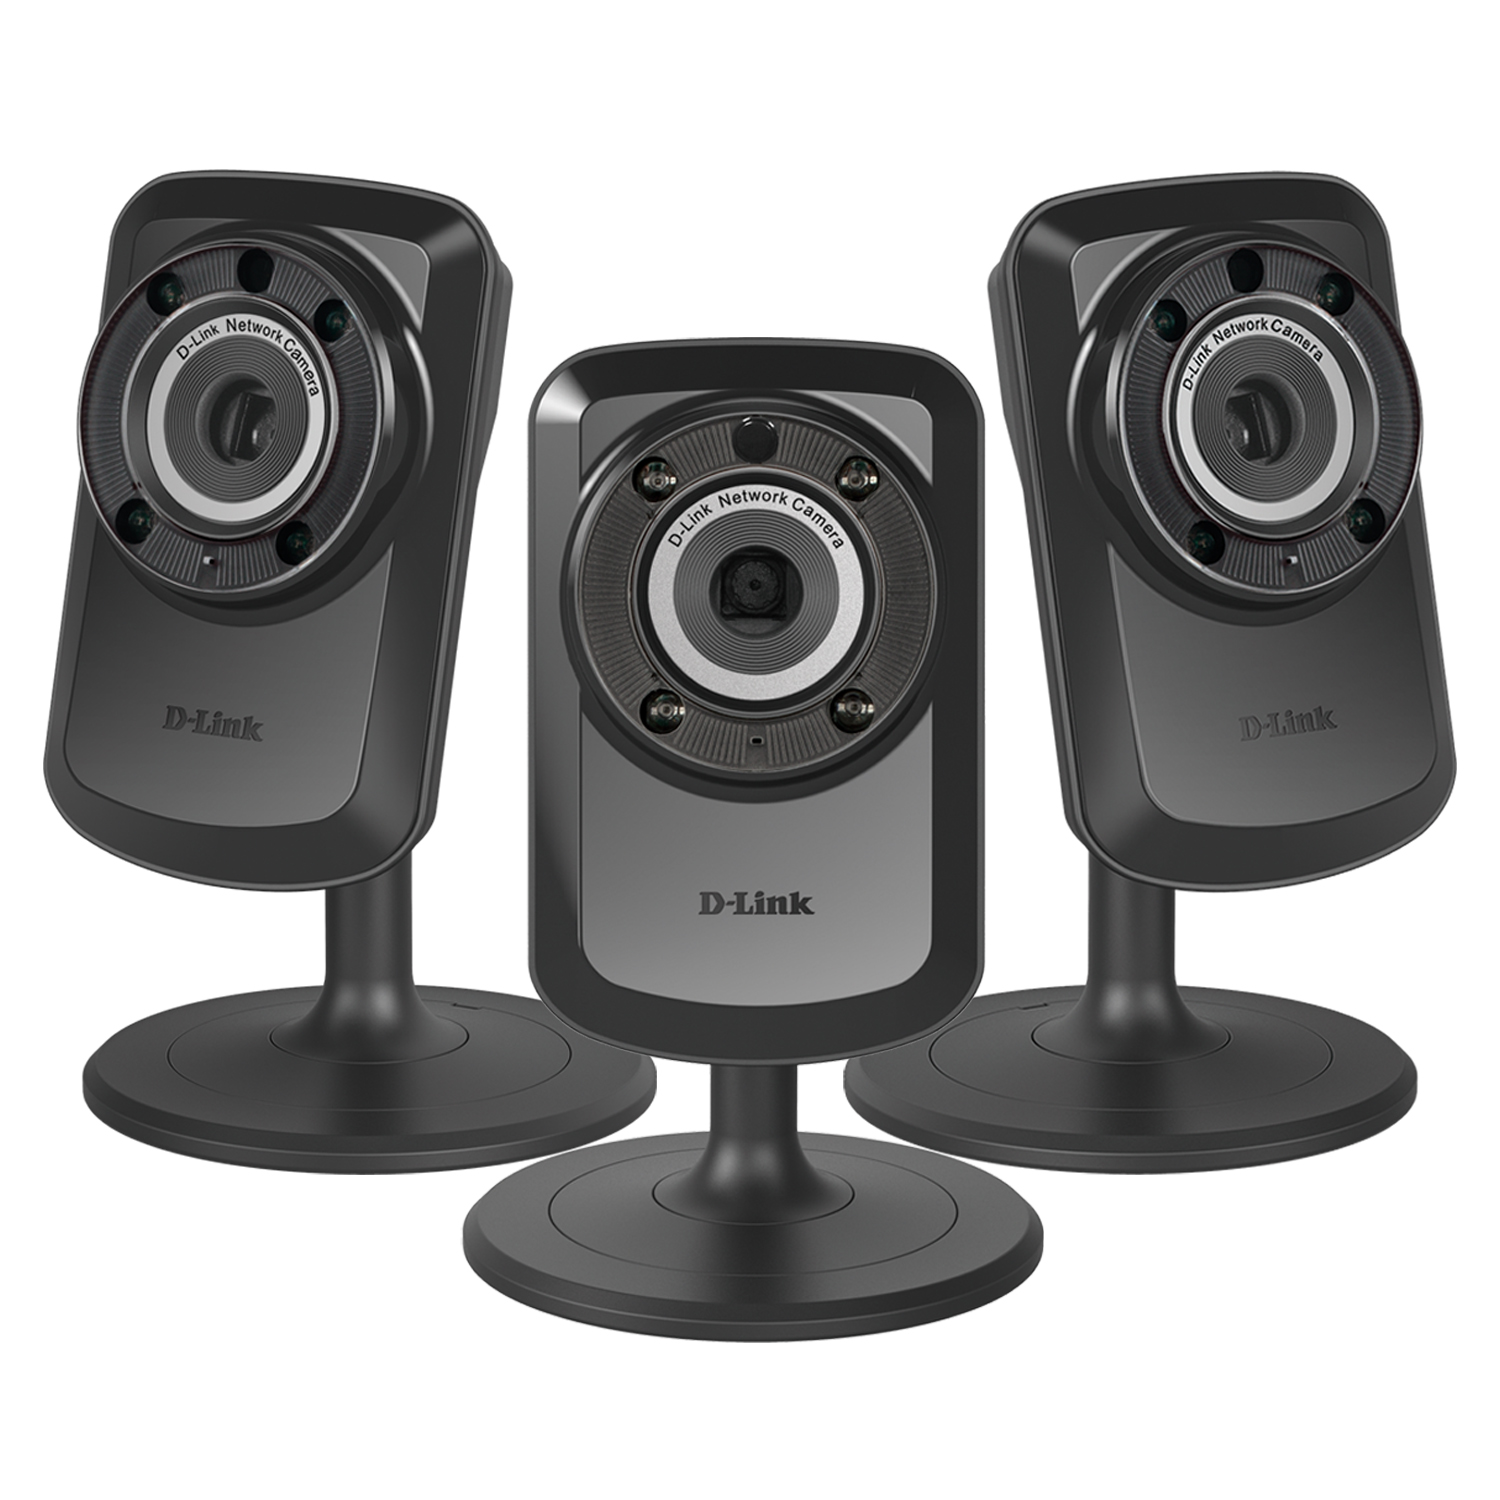 3-PACK D-Link Wireless Day Night WiFi IP Security Camera & Remote View DCS-934L